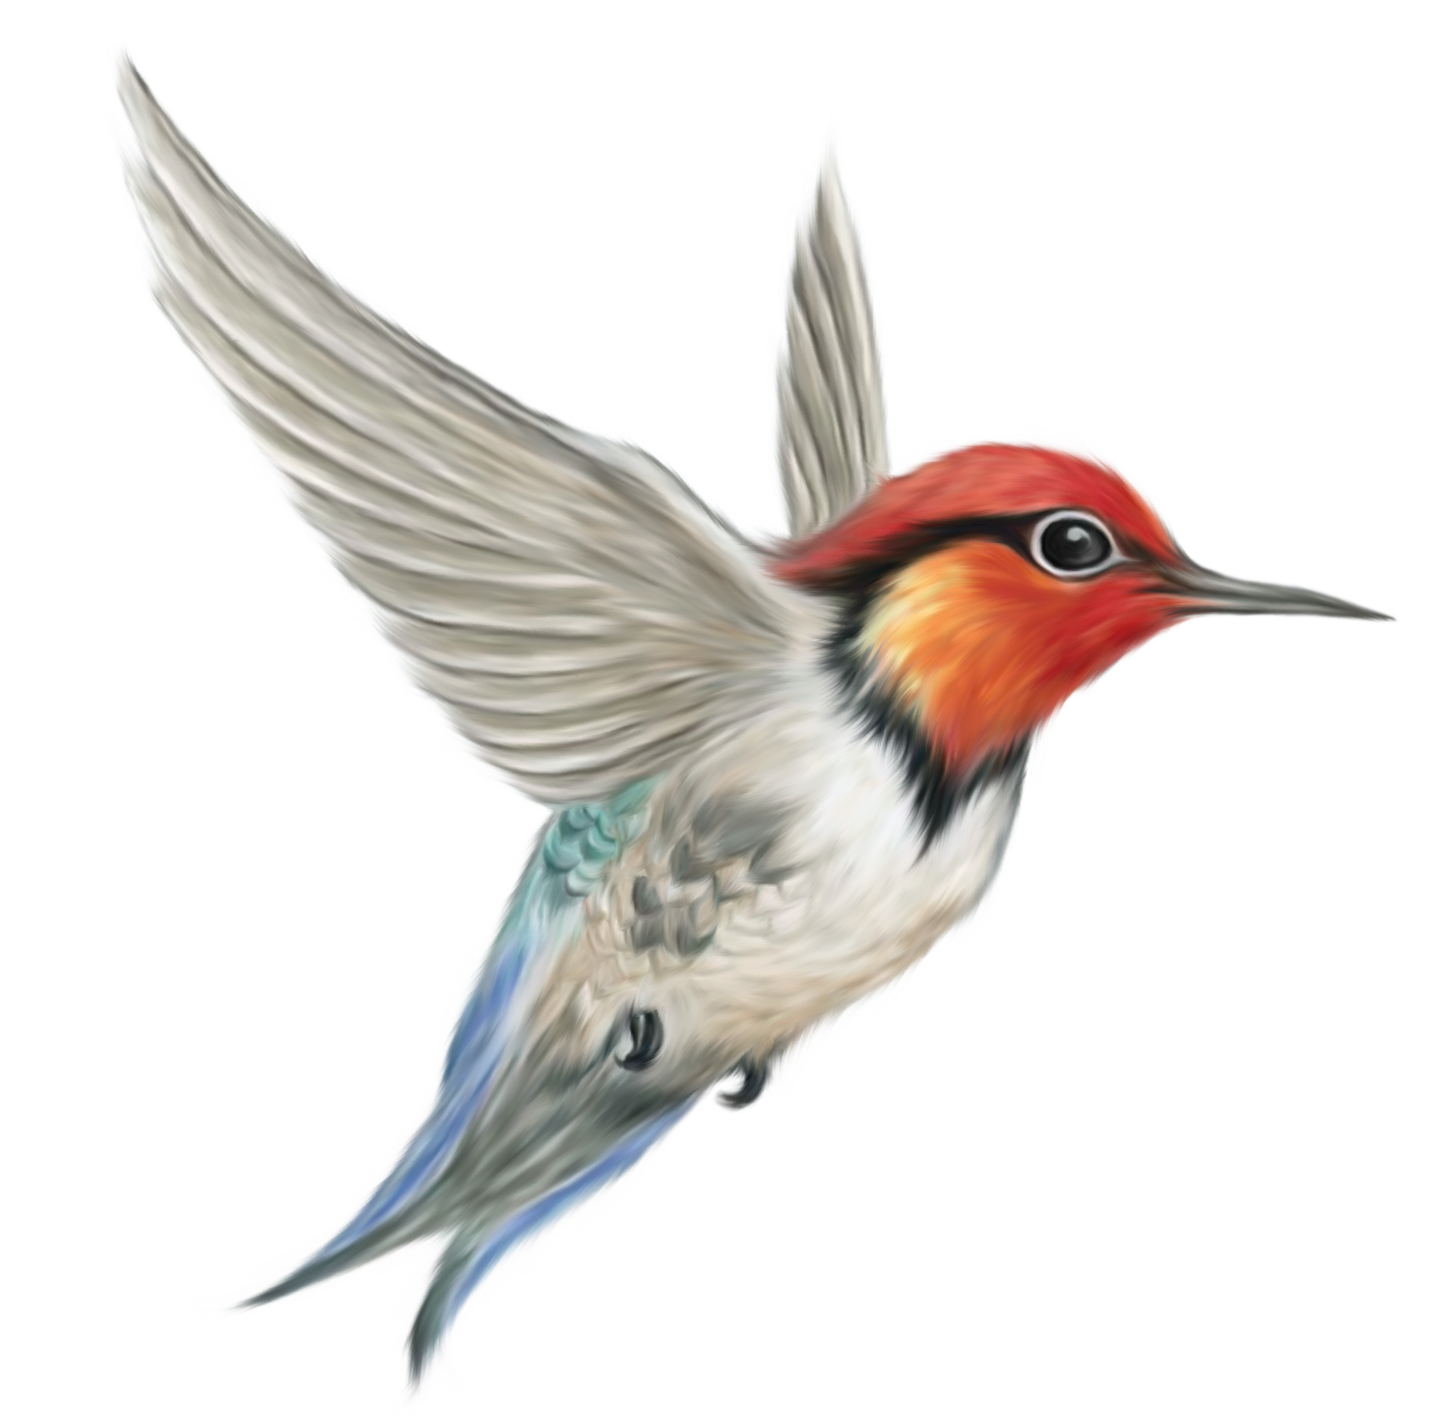 Kingfisher PNG File